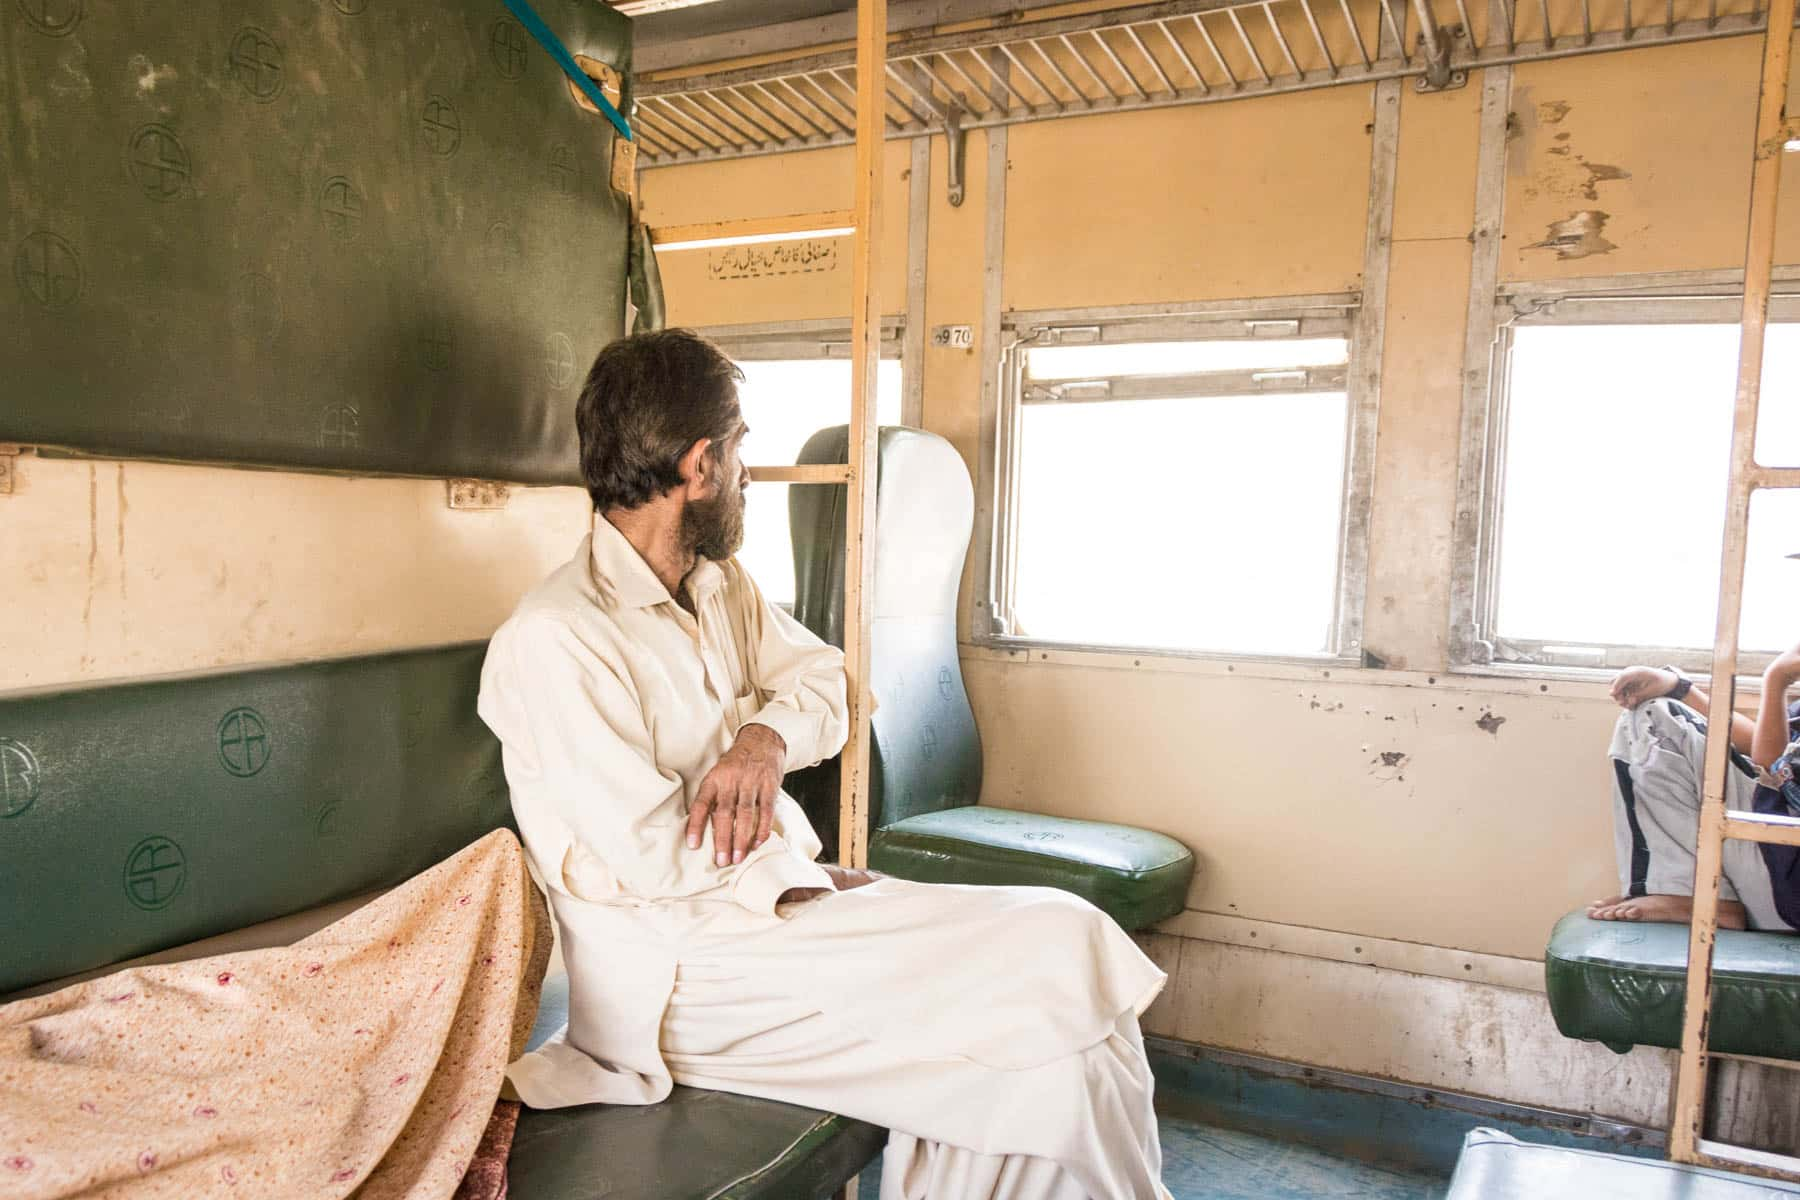 Guide to train travel in Pakistan - Economy standard train class - Lost With Purpose travel blog